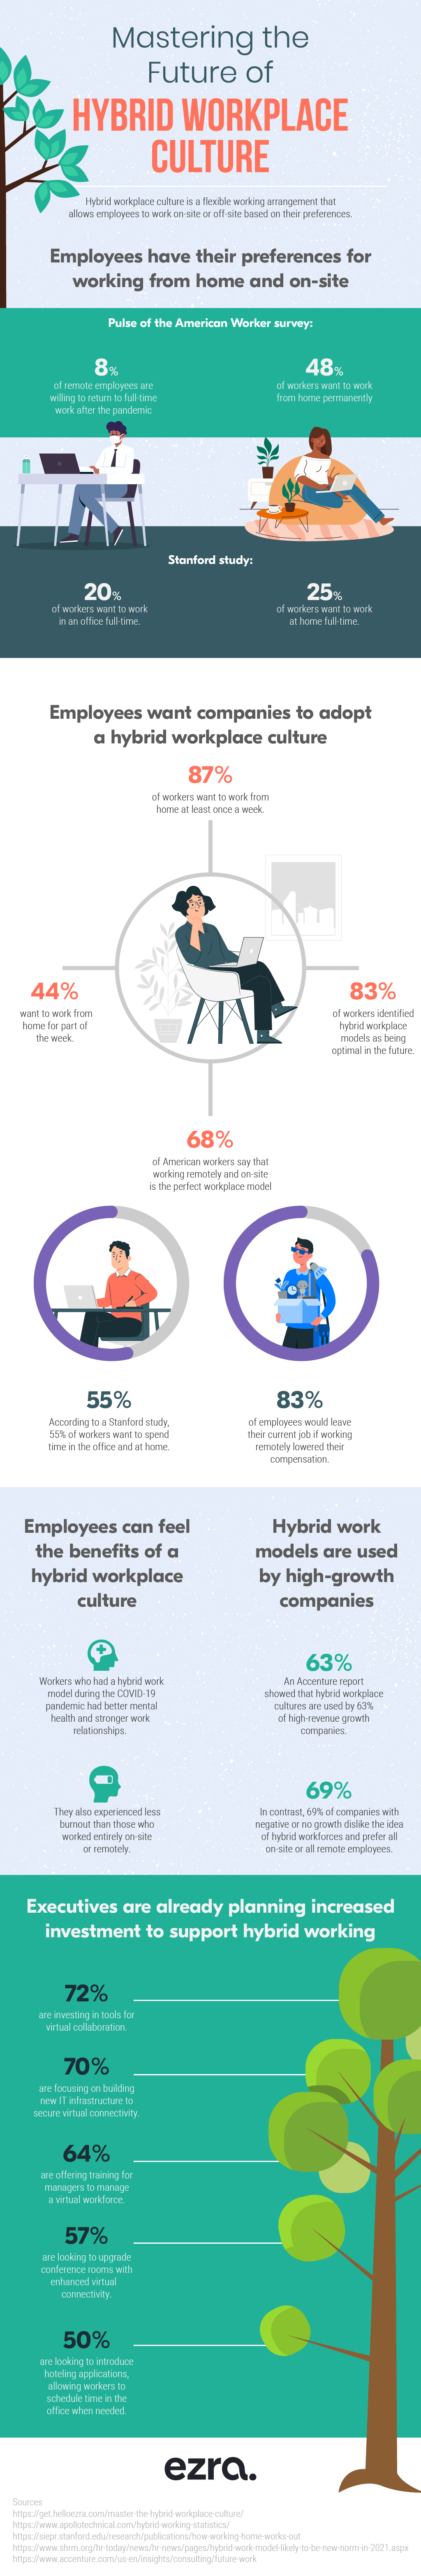 Mastering the Future of Hybrid Workplace Culture